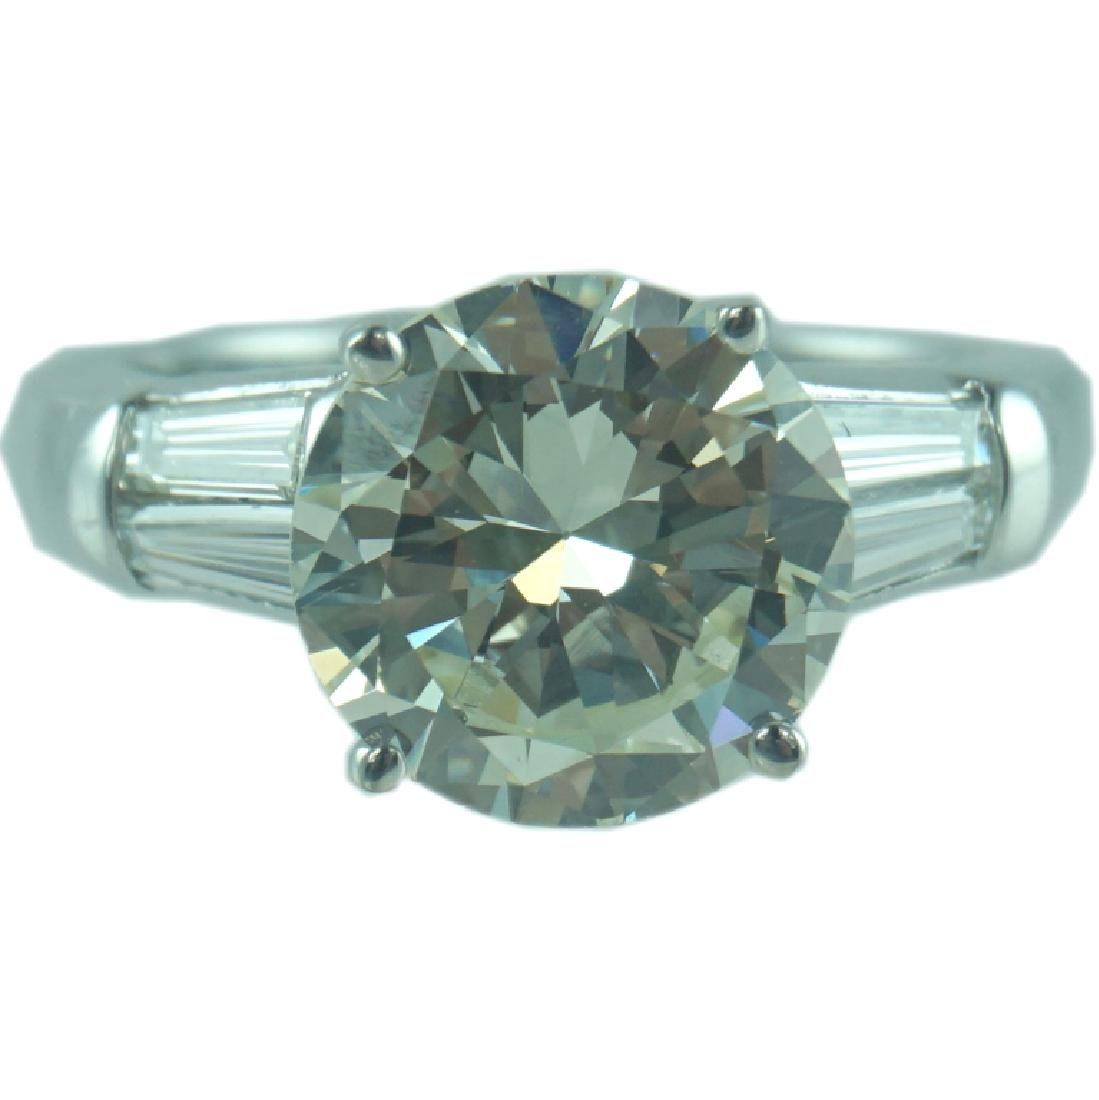 GIA Certified, 3.52 VS1/M Engagement Ring.